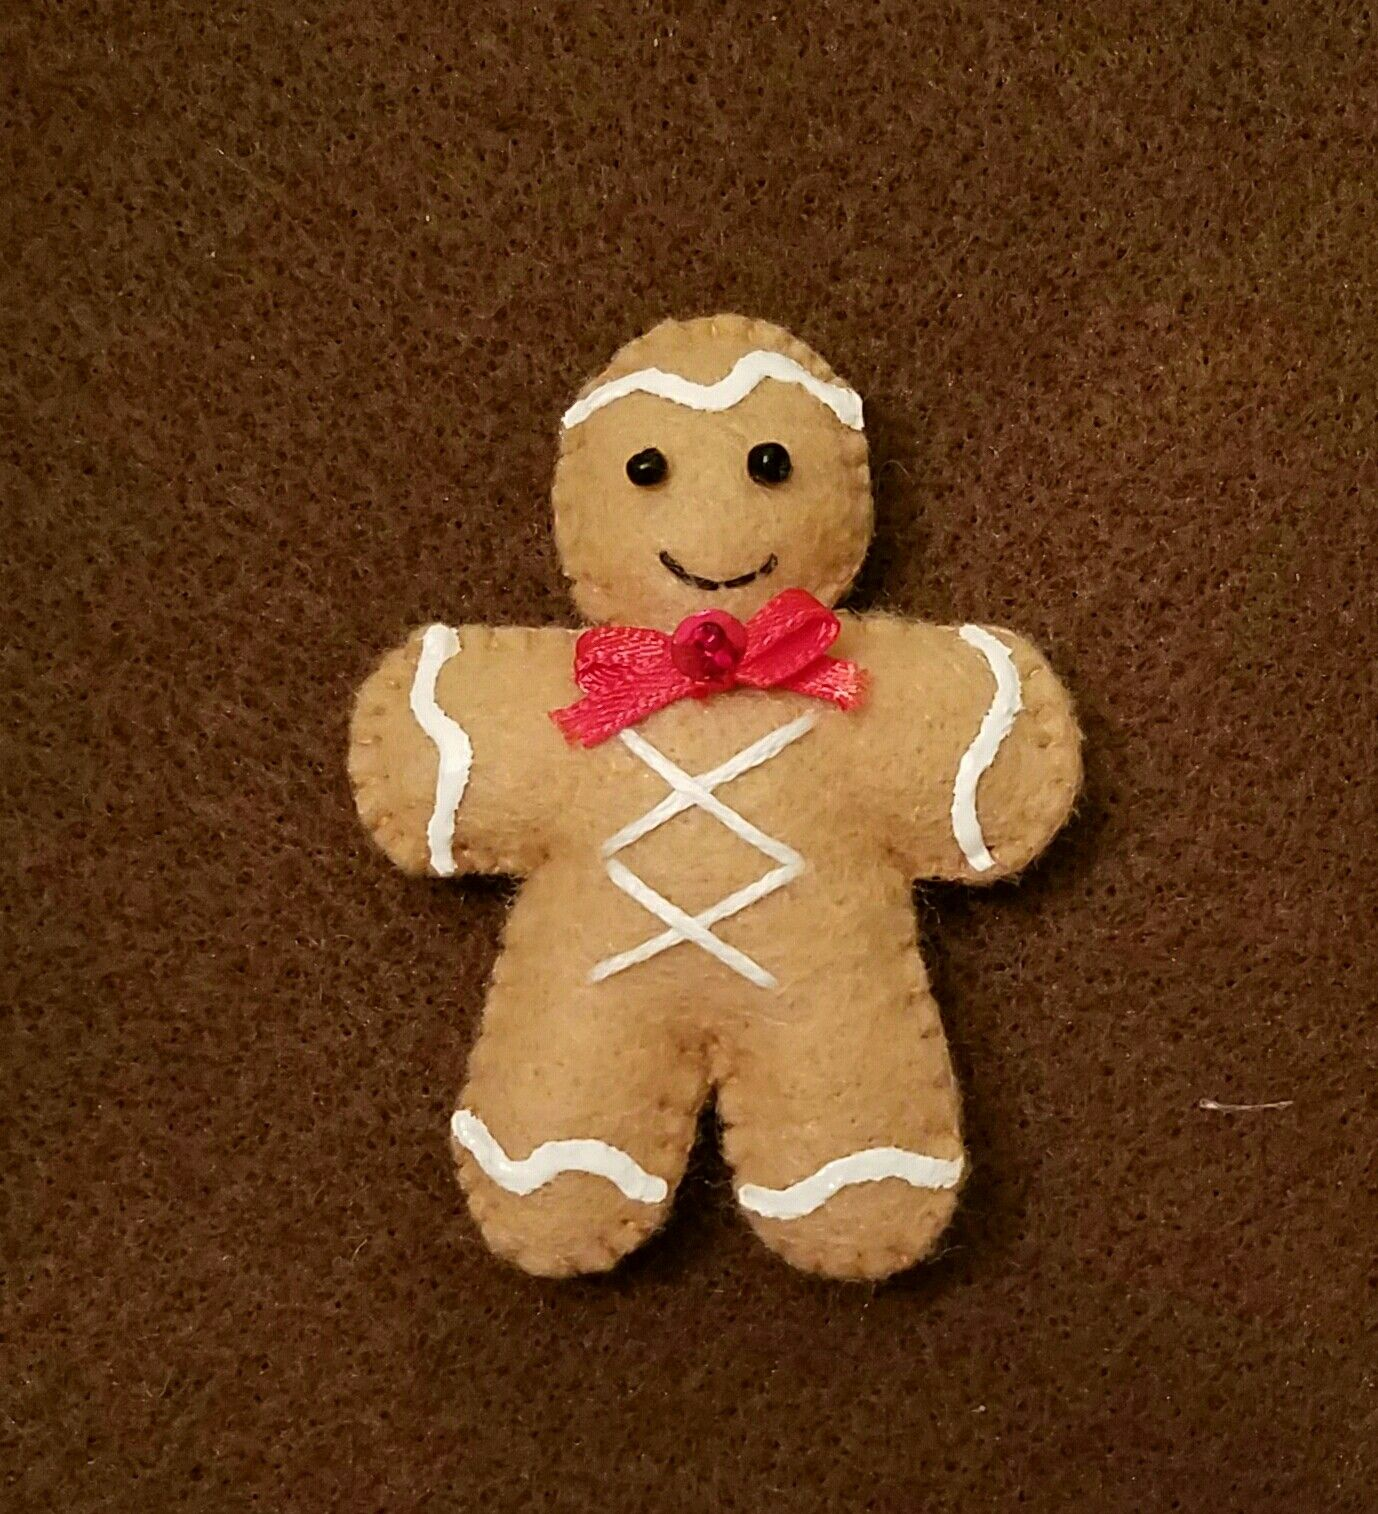 Gingerbread Man Ornament I Made That Matches Penny Rug Tree Skirt